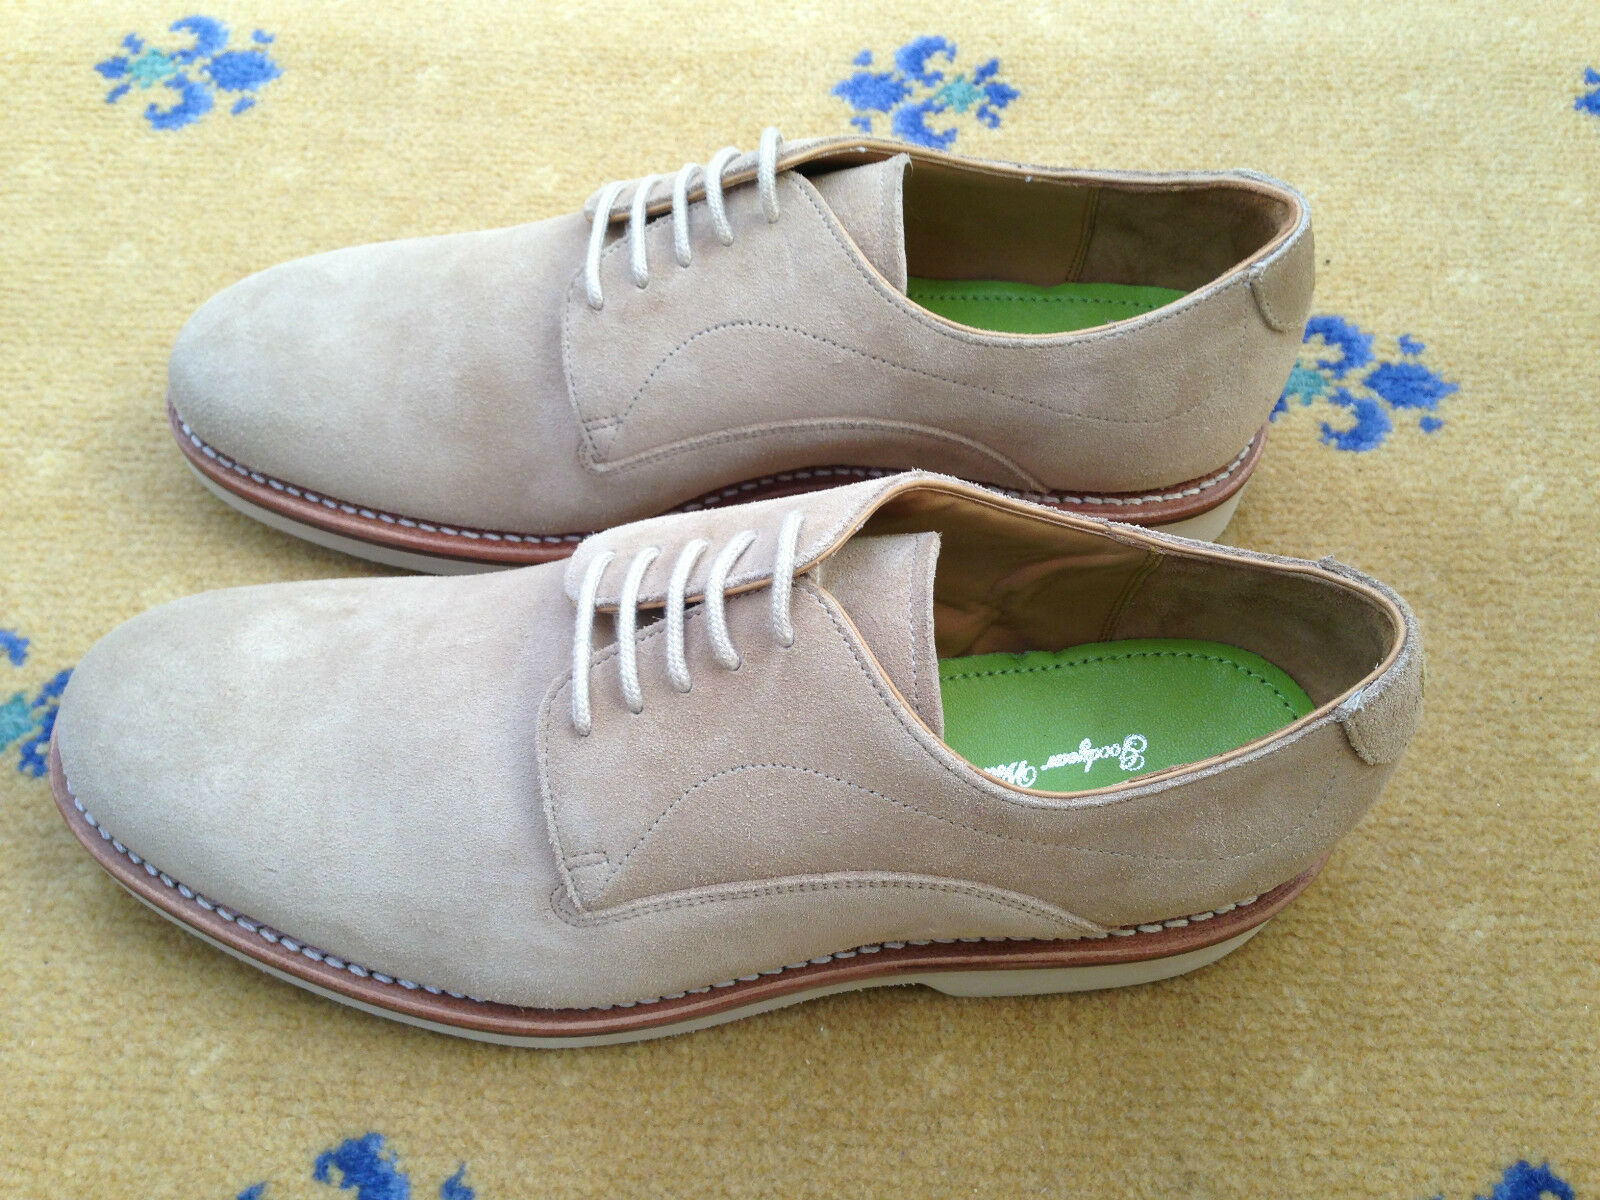 NEW OLIVER SWEENEY  Herren Schuhe BEIGE TAN SUEDE UP LACE UP SUEDE OXFORDS UK 7.5   8.5 41.5 95f091